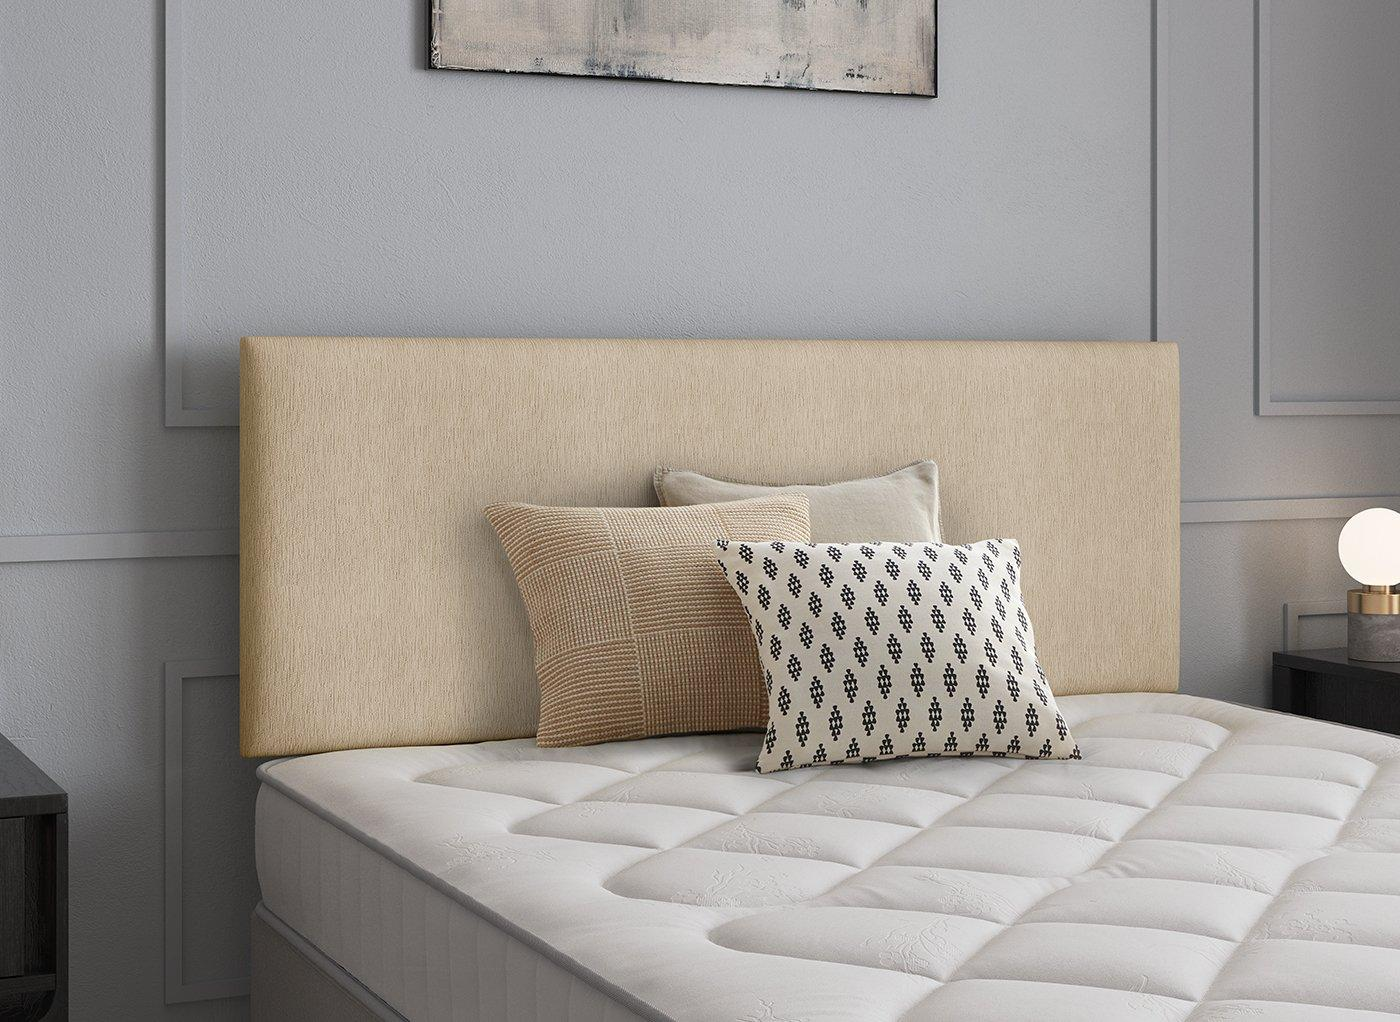 Newark Headboard 4'0 Small double CREAM